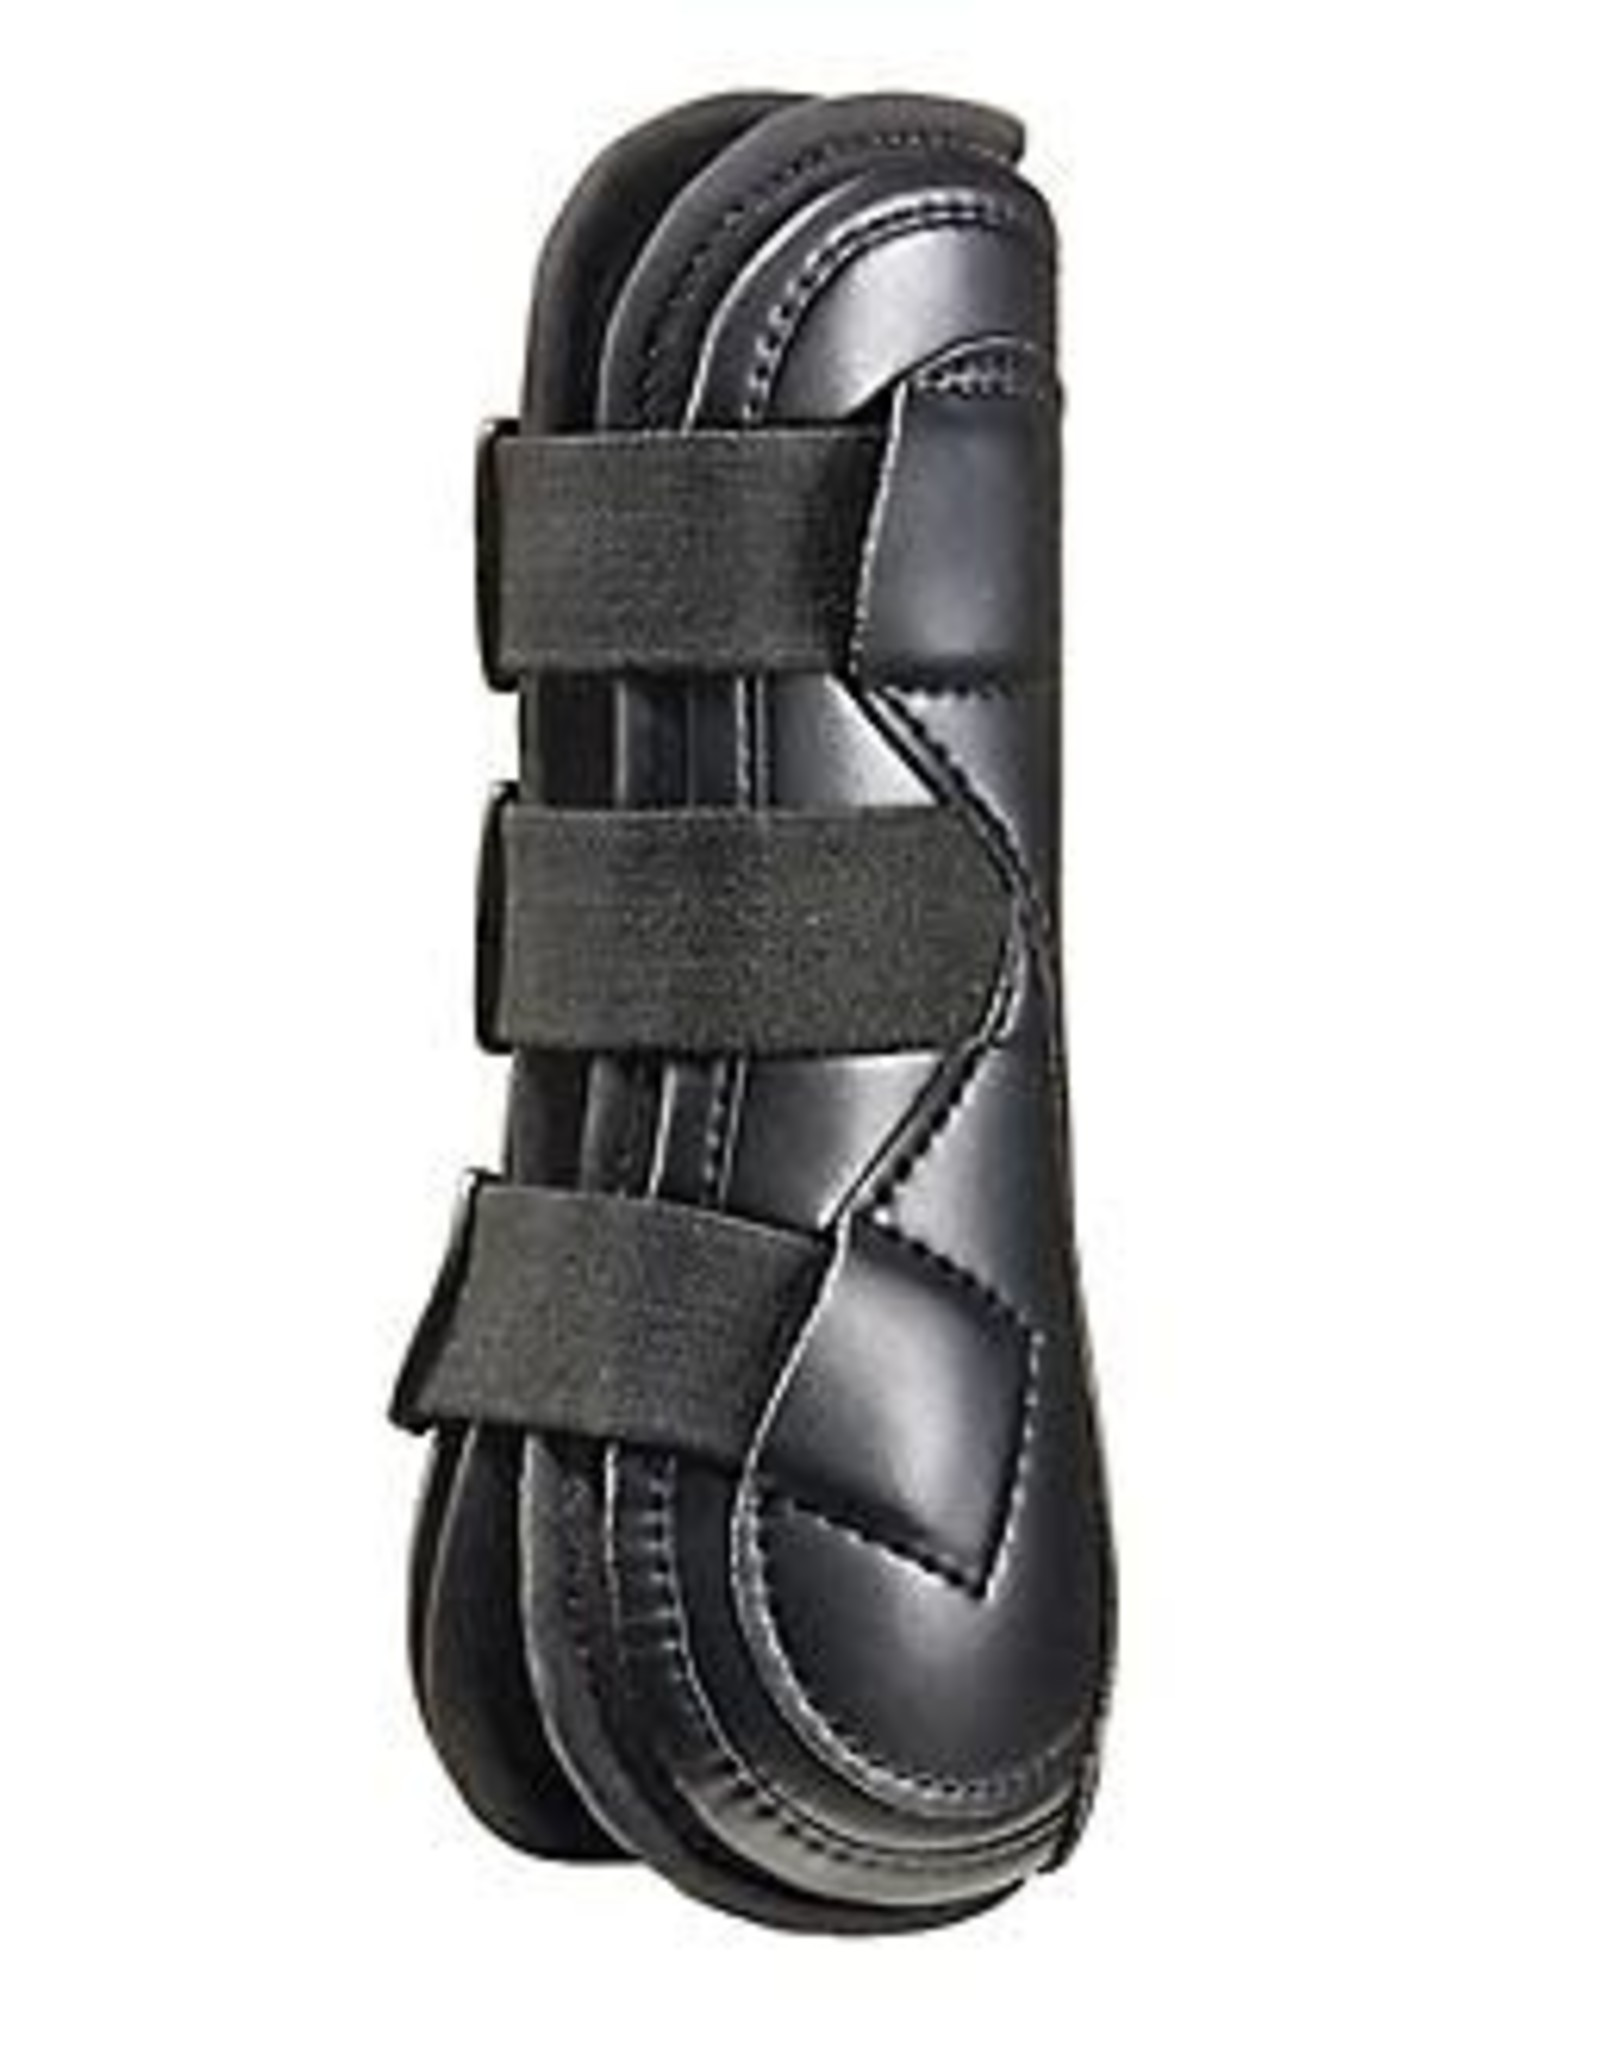 Equifit EQ-Teq Front Boot, Sheepswool Liner